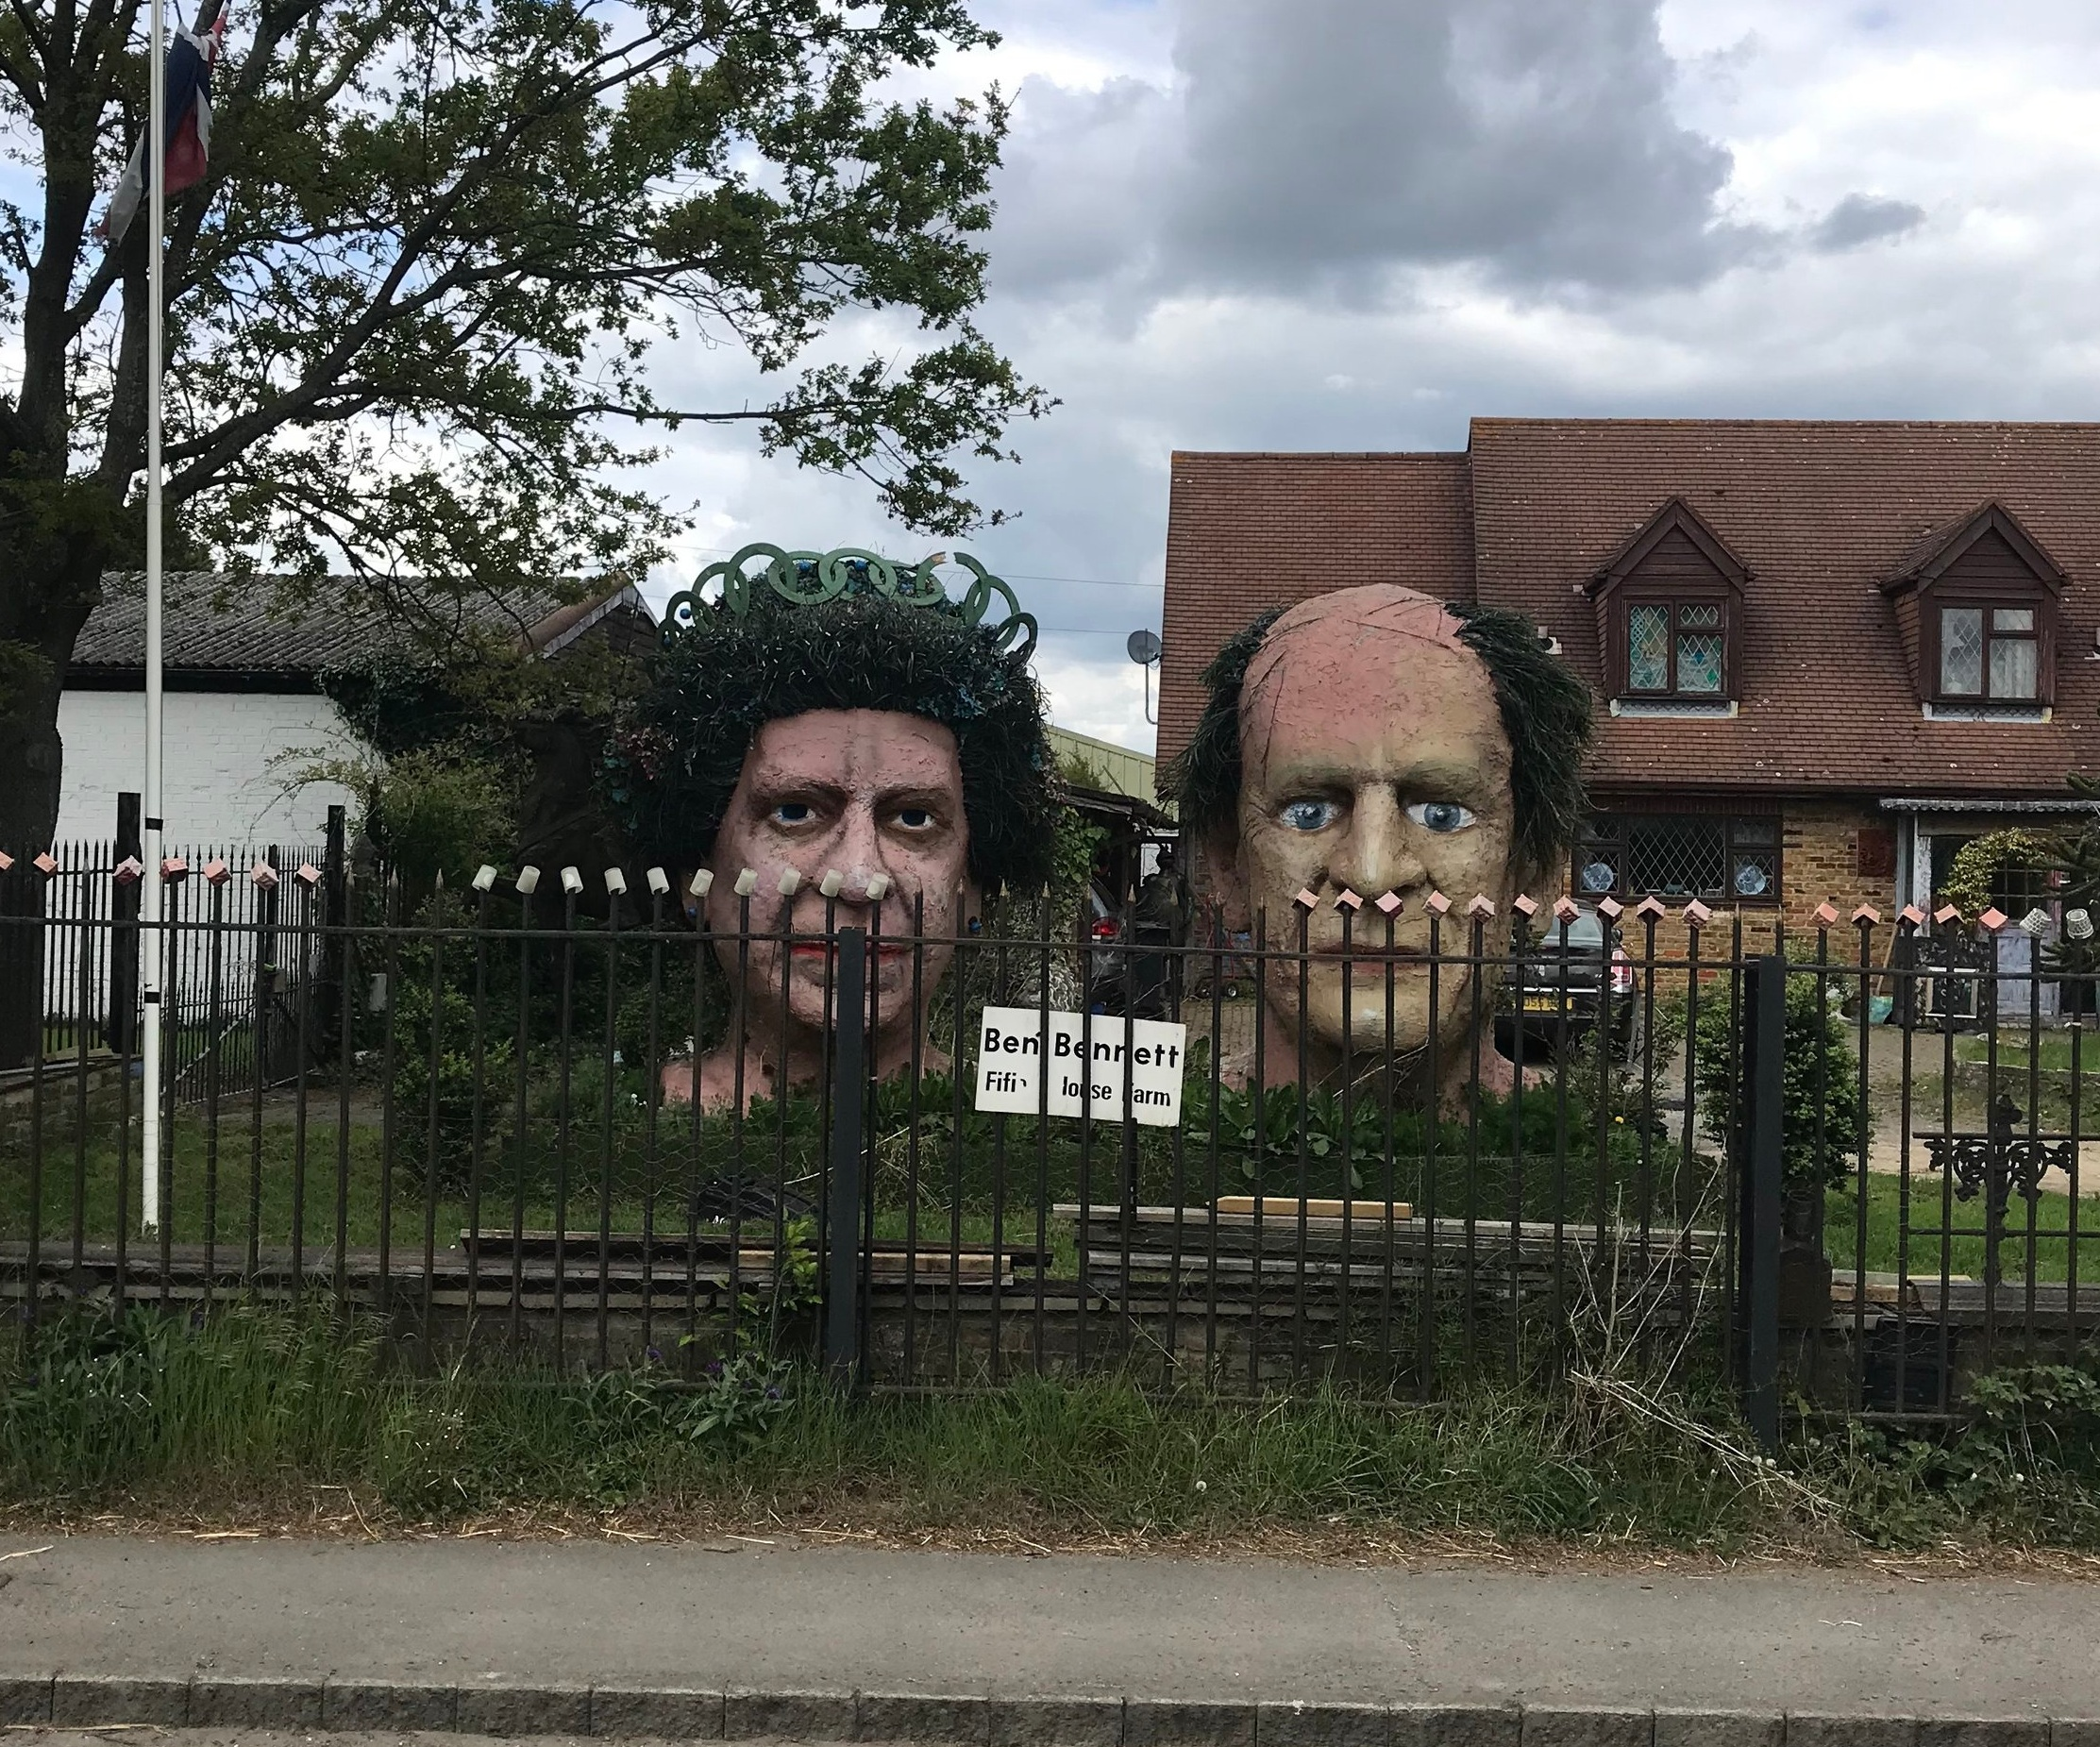 Would definitely not have seen this on the train! The royal garden at Fifield with the Queen and Duke of Edinburgh's heads sculptured in giant size!